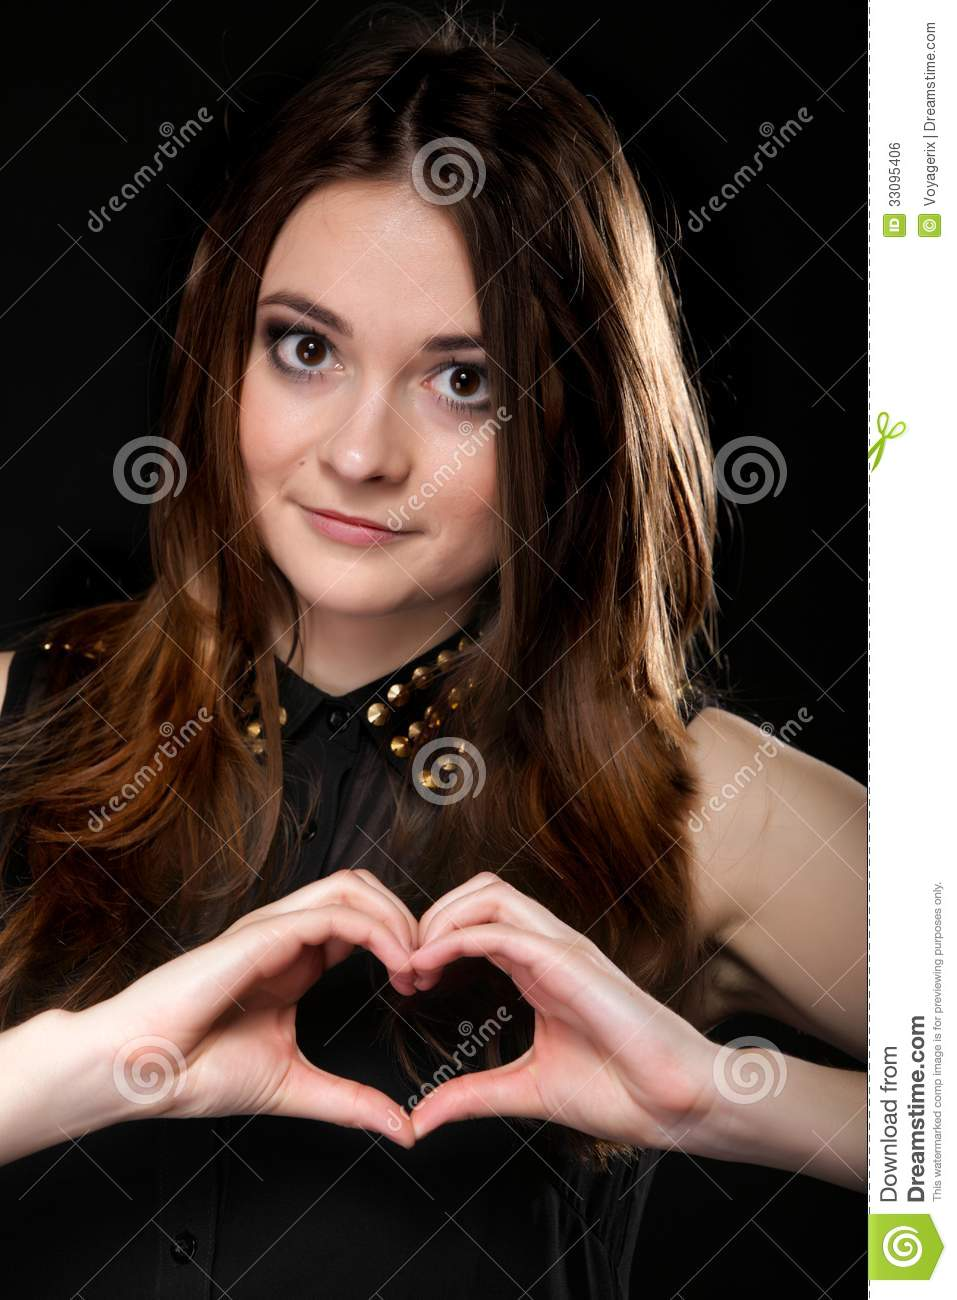 Girl Doing Heart Shape Love Symbol With Her Hands. Stock Photo ...